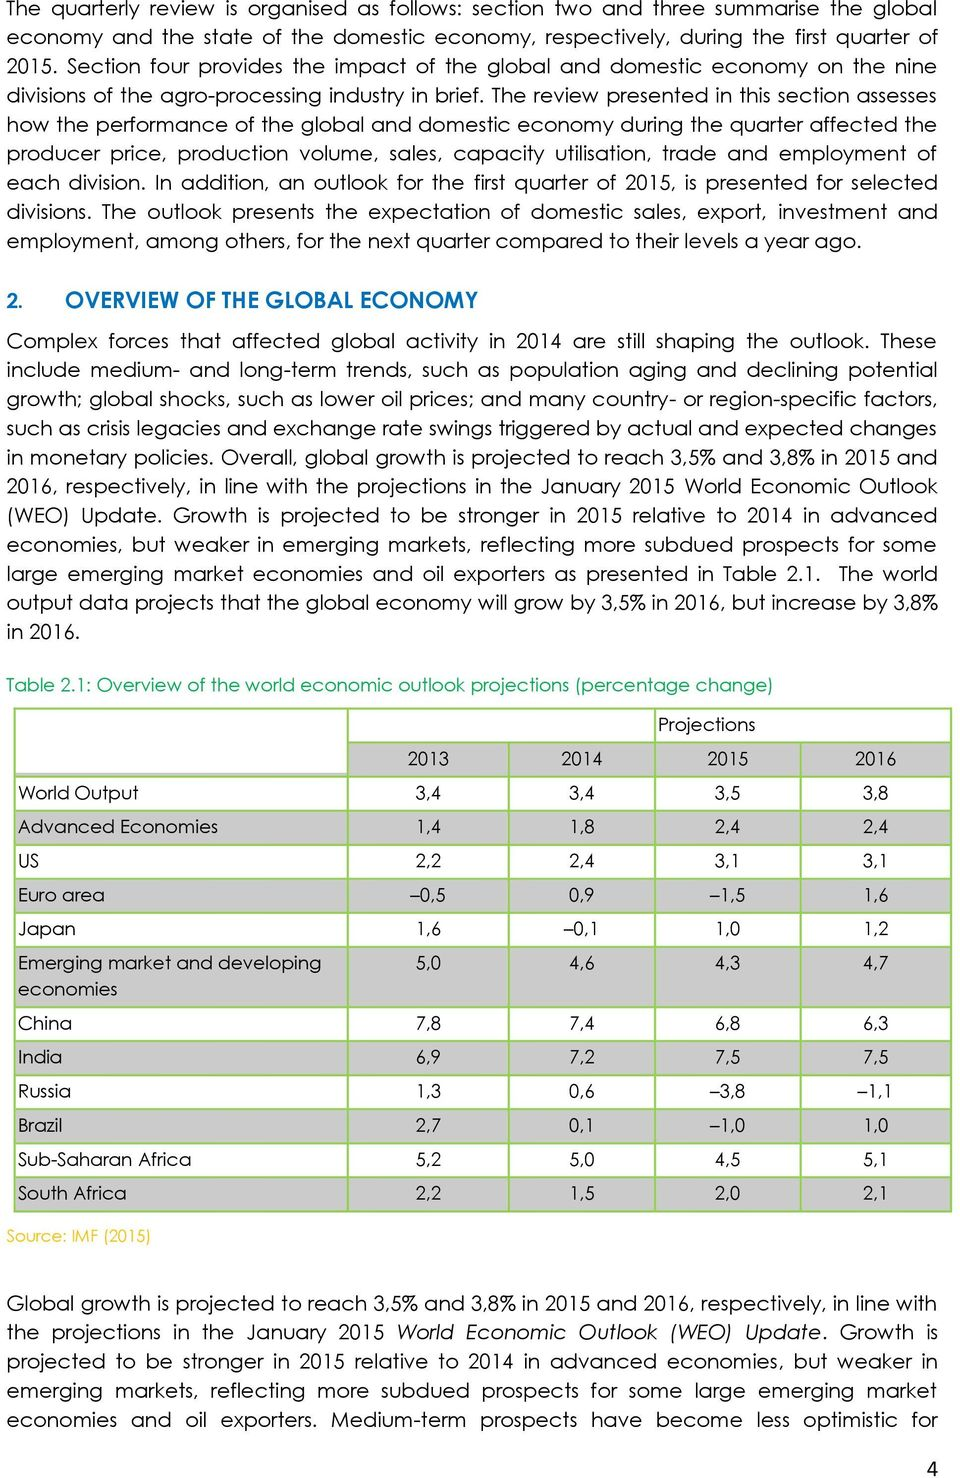 The review presented in this section assesses how the performance of the global and domestic economy during the quarter affected the producer price, production volume, sales, capacity utilisation,